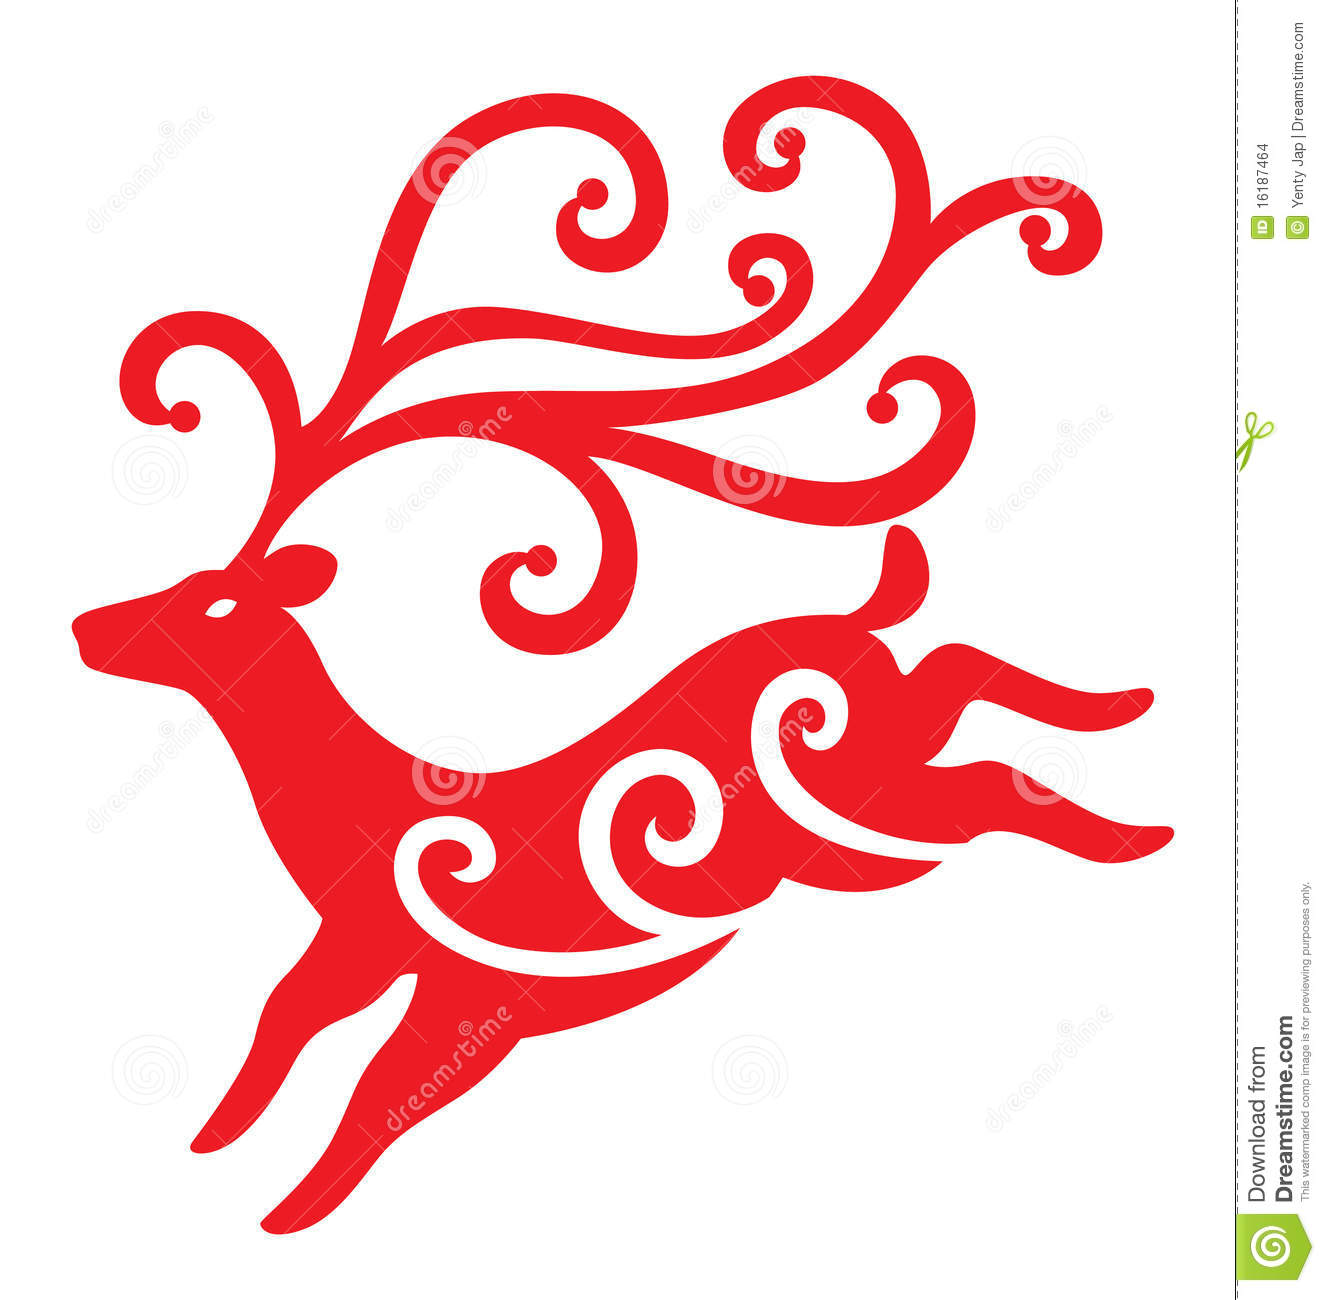 reindeer illustrated with swirls decoration for Christmas season.